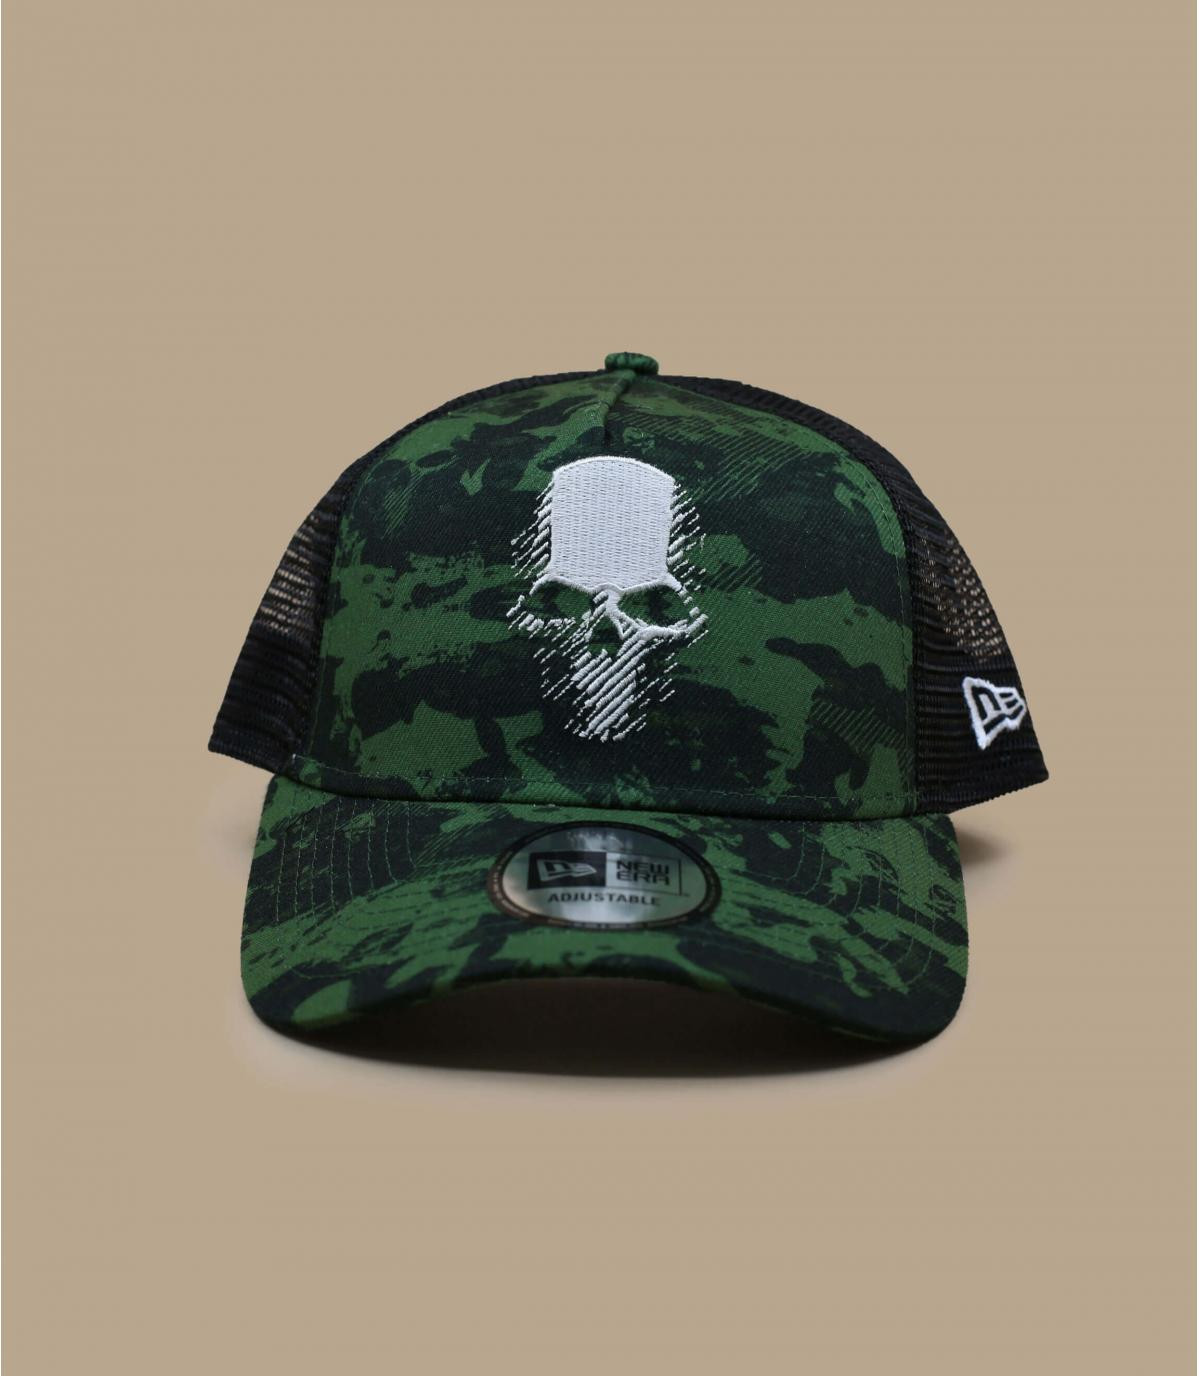 Détails Trucker Ghost Recon Breakpoint - image 2